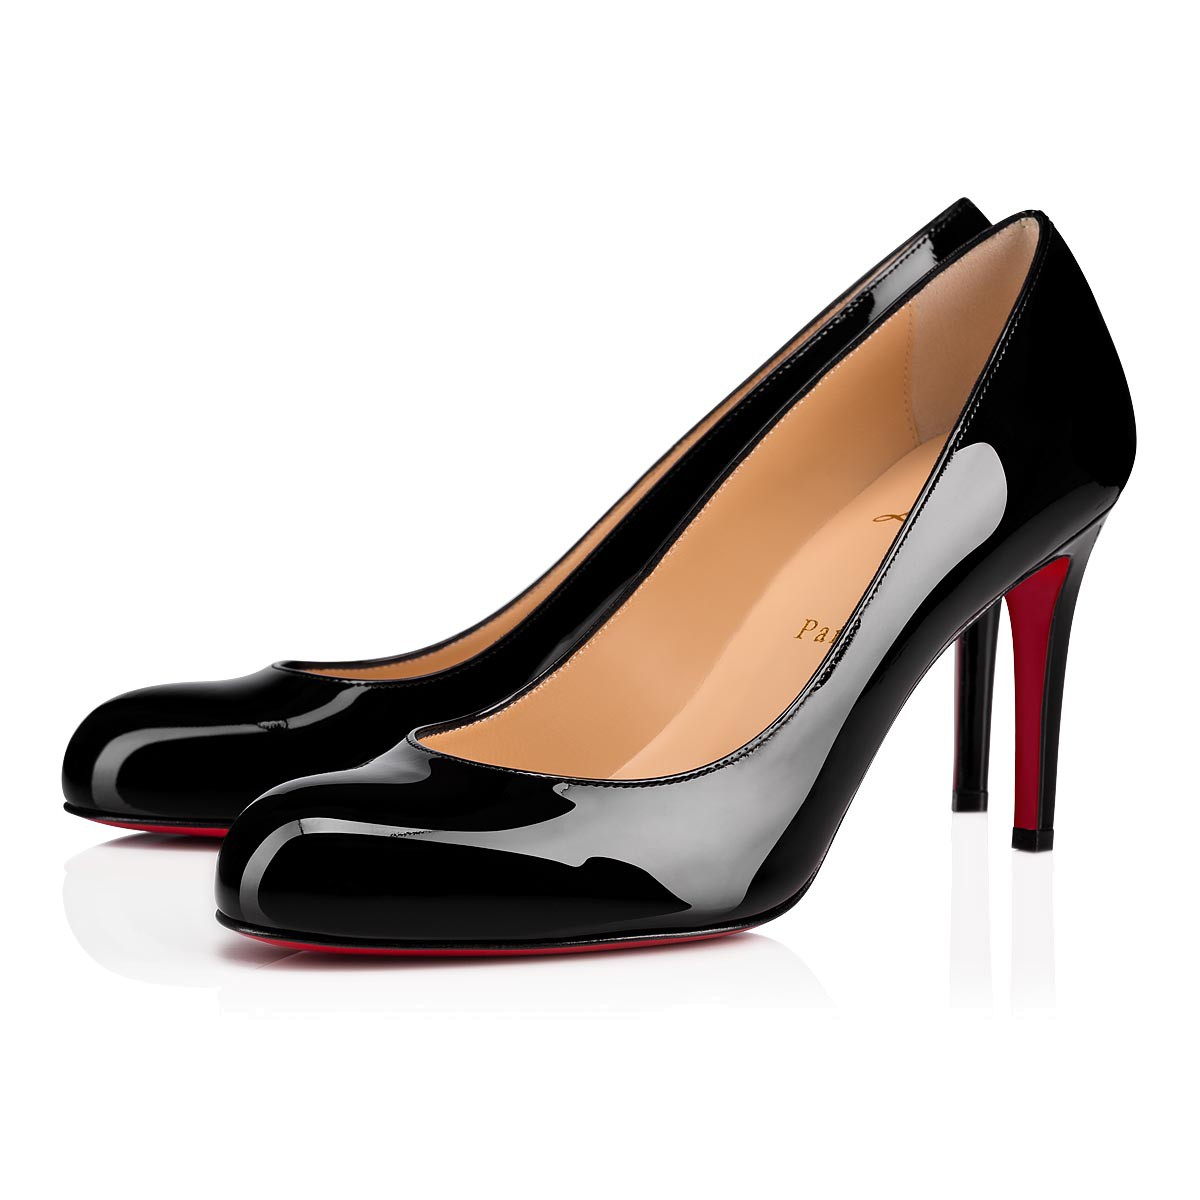 ddaf29a740e Simple Pump 85 Black Patent Leather - Women Shoes - Christian ...